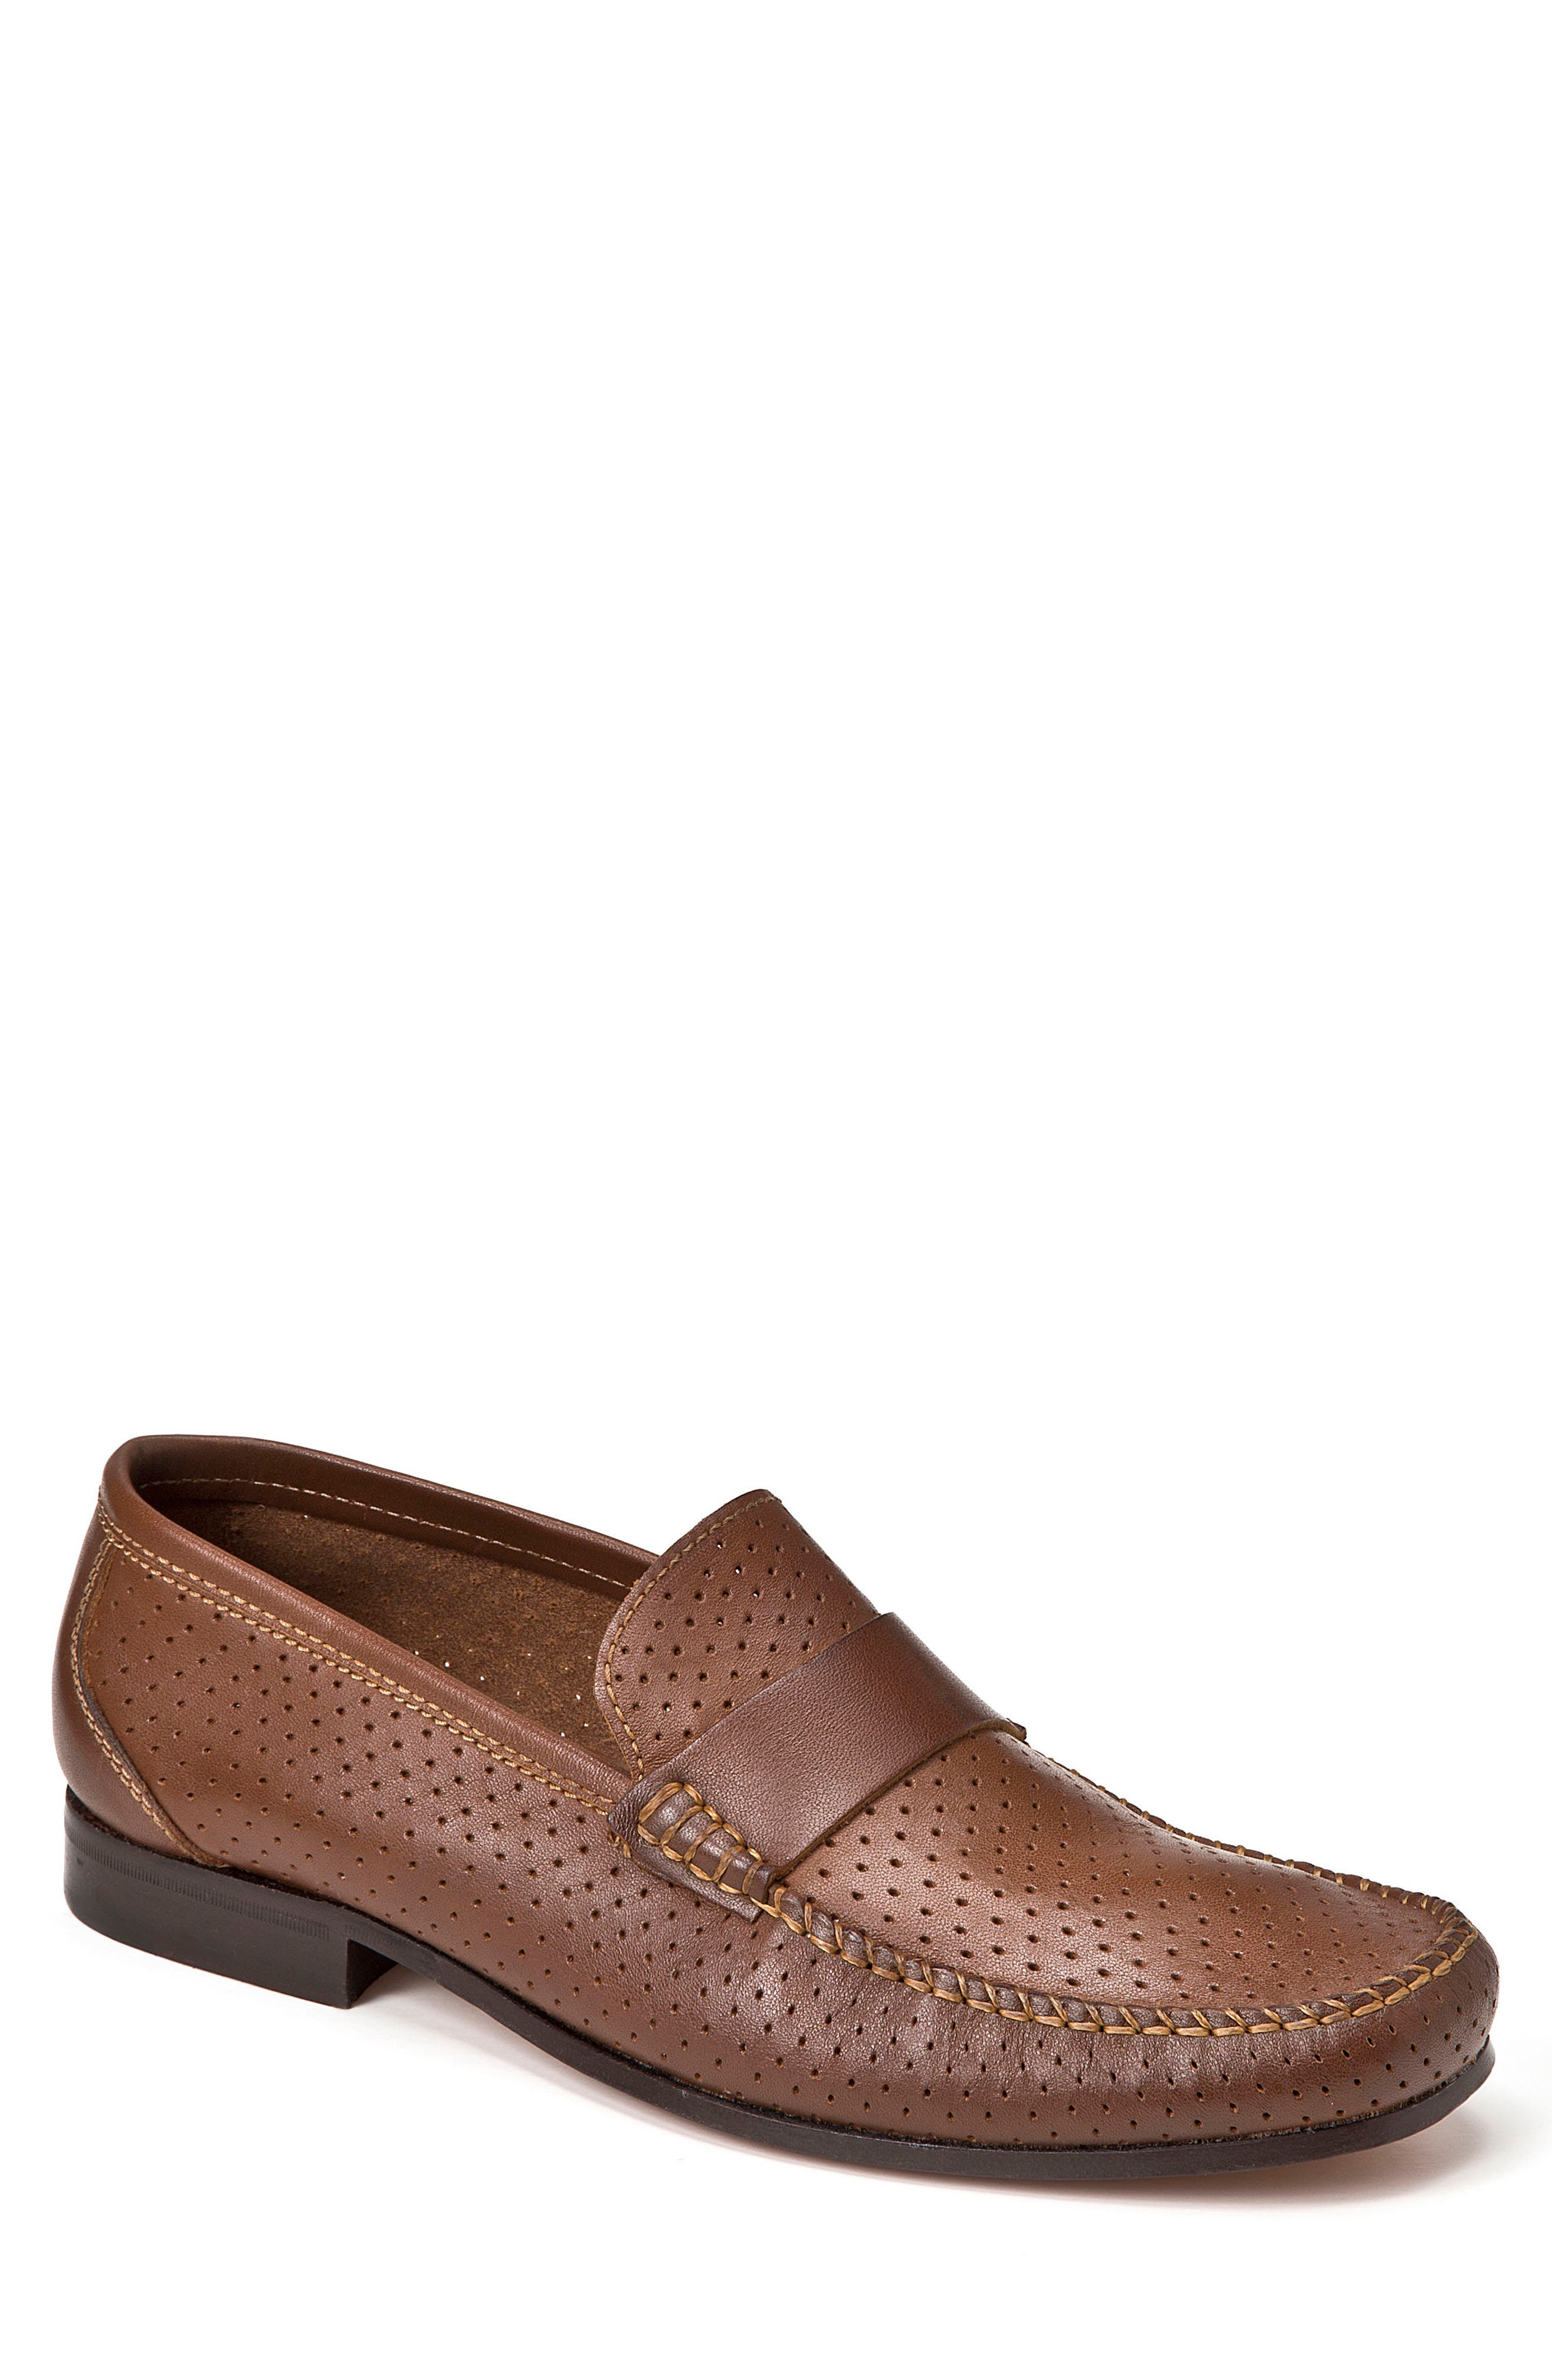 Alcazar Perforated Loafer,                             Main thumbnail 1, color,